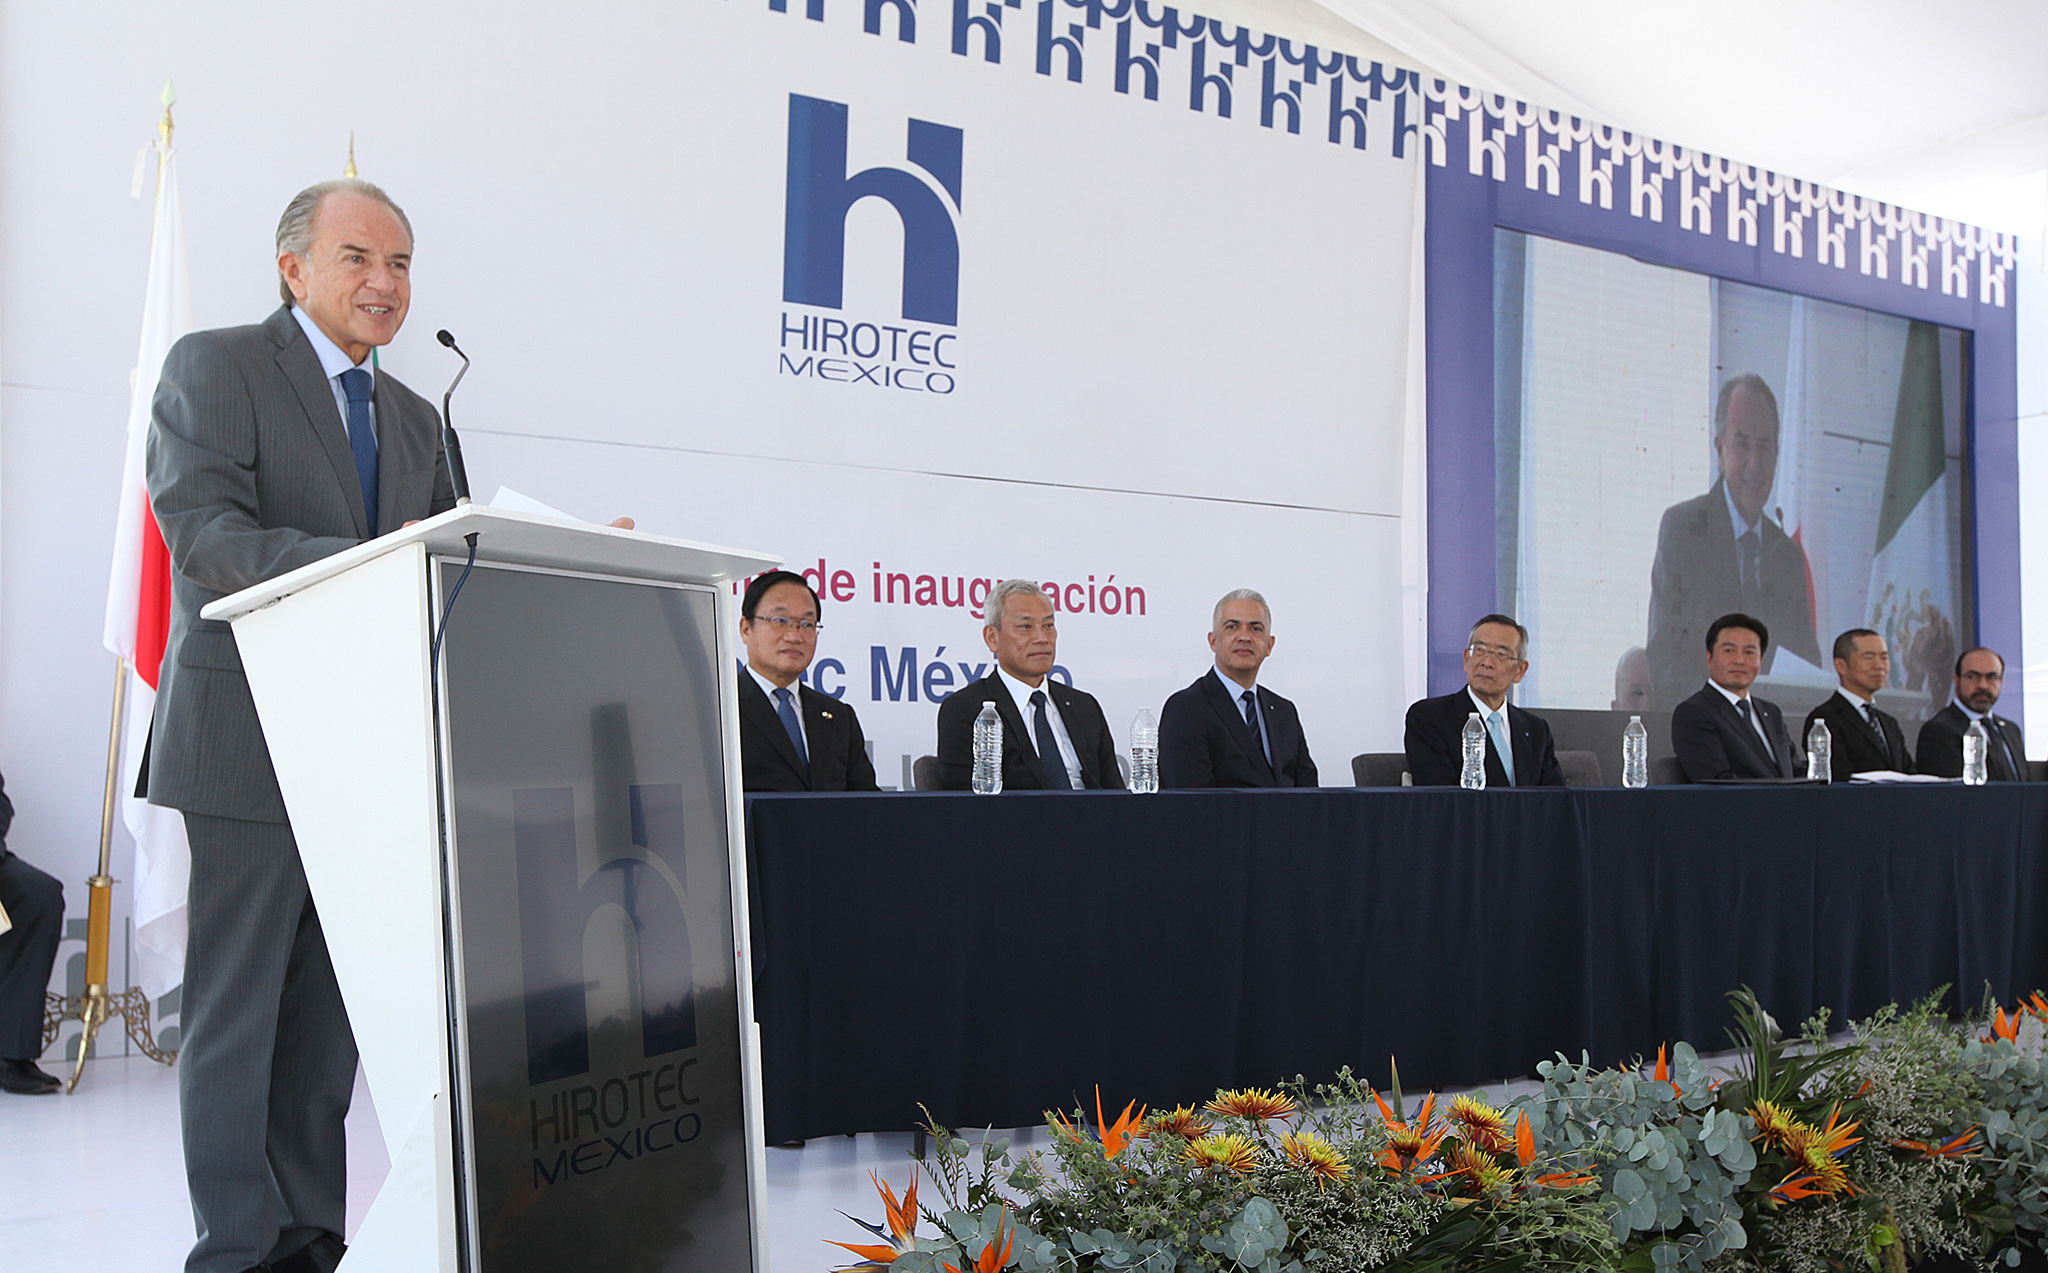 Hirotec arrives in San Luis Potosi and makes a US$53 million investment